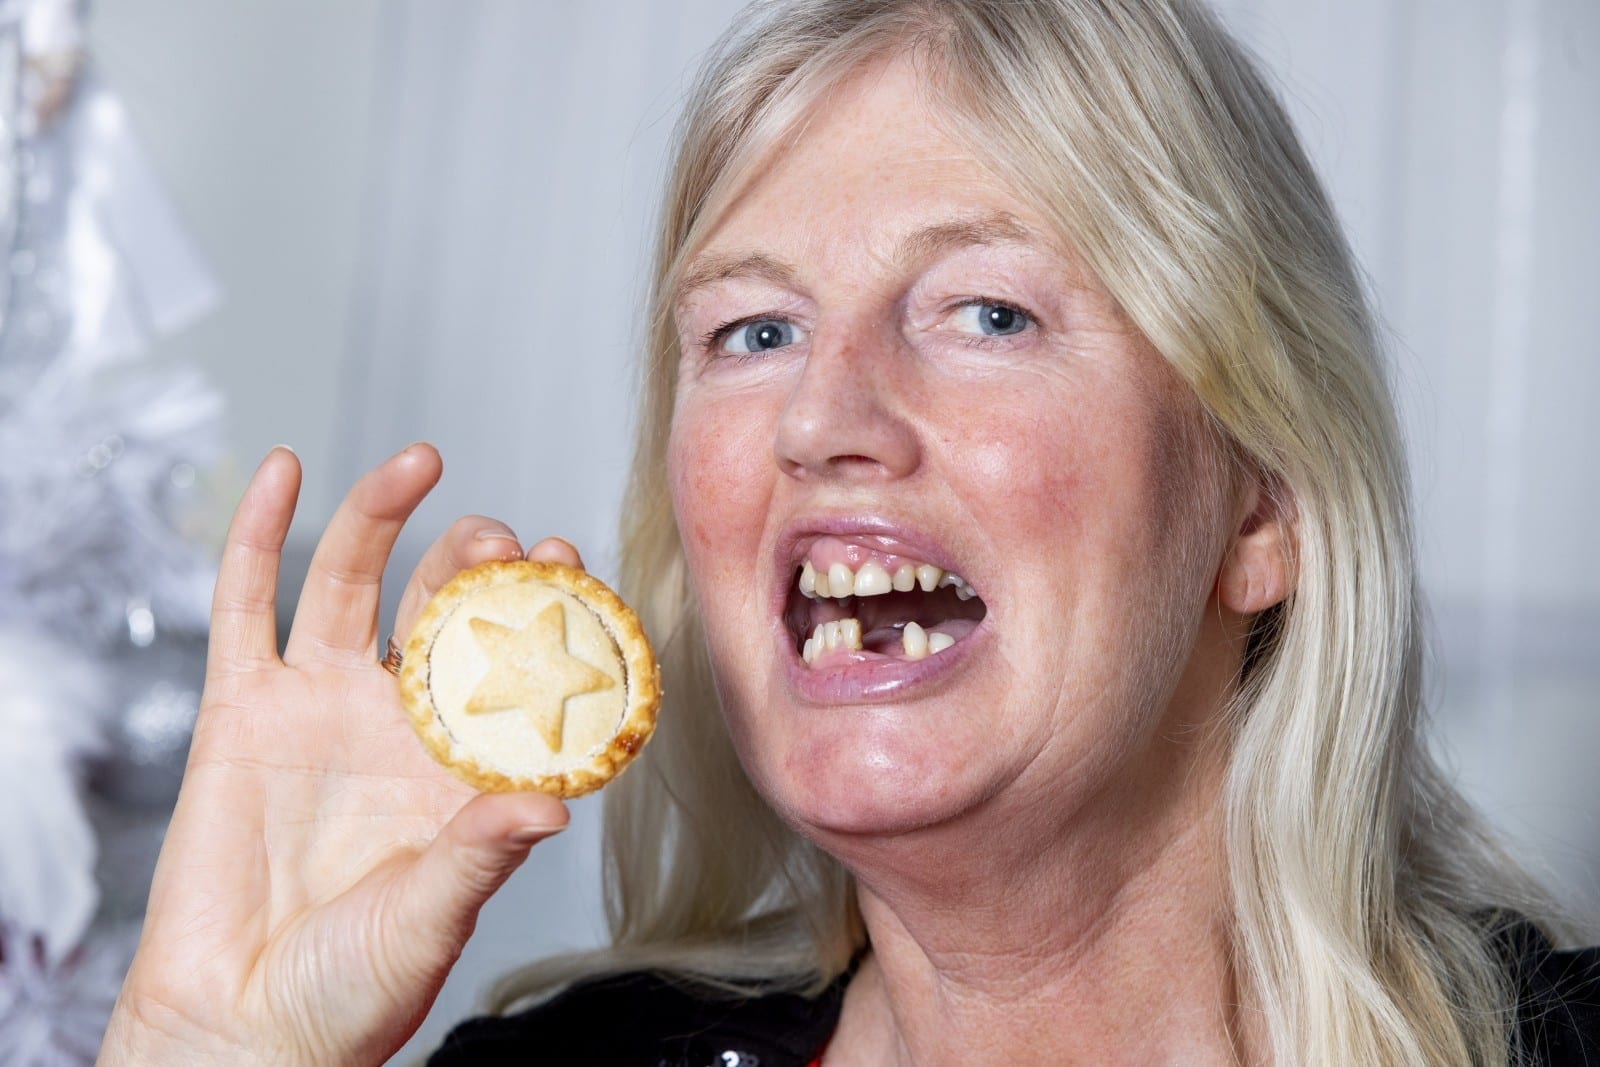 'All I Wants For Christmas Is My Two Front Teeth' - Mum Accidentally Swallowed Her Dentures While Eating A Mince Pie